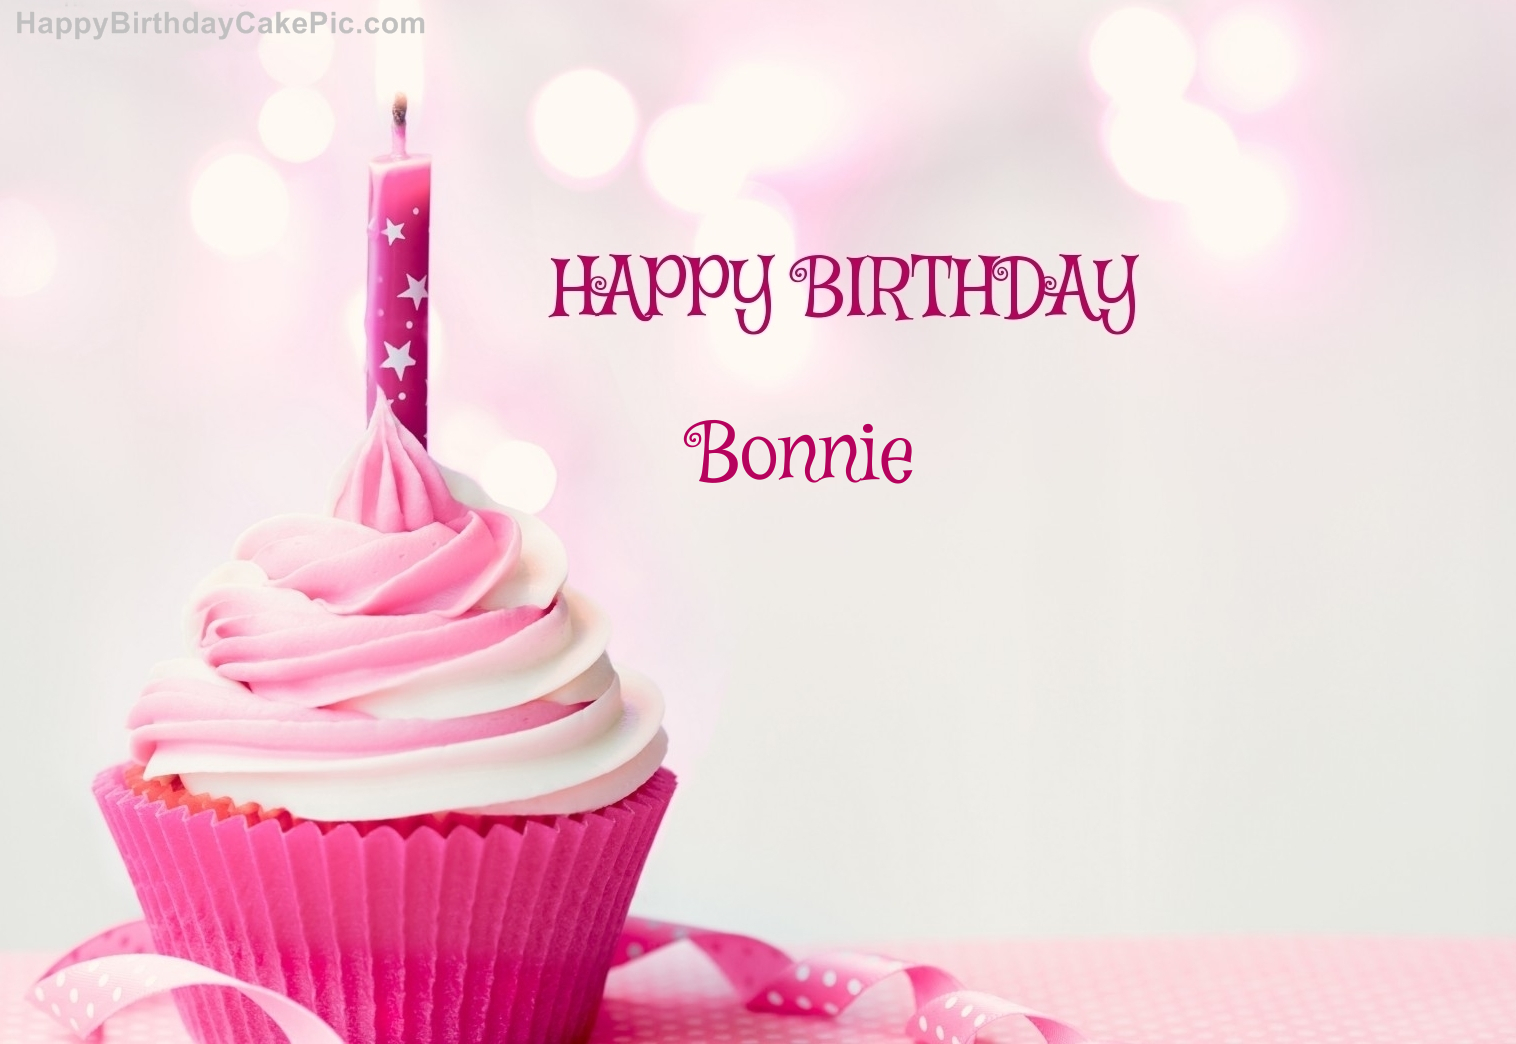 Happy birthday cupcake candle pink cake for bonnie write name on happy birthday cupcake candle pink cake publicscrutiny Image collections